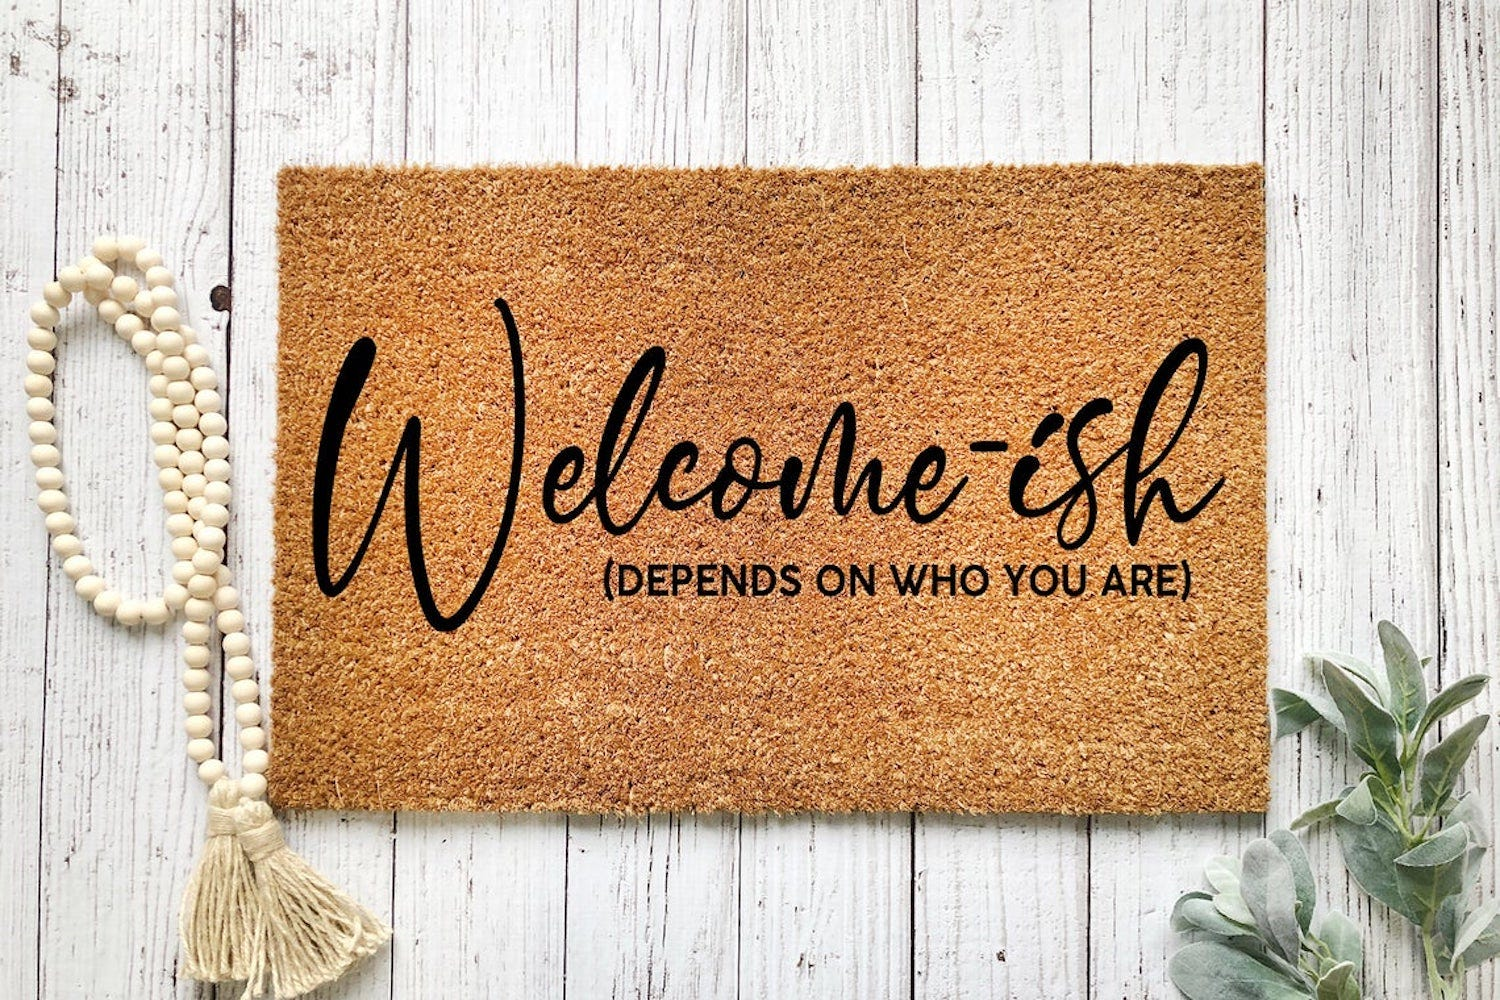 """A doormat reading """"Welcome-ish (Depends on Who You Are)"""""""